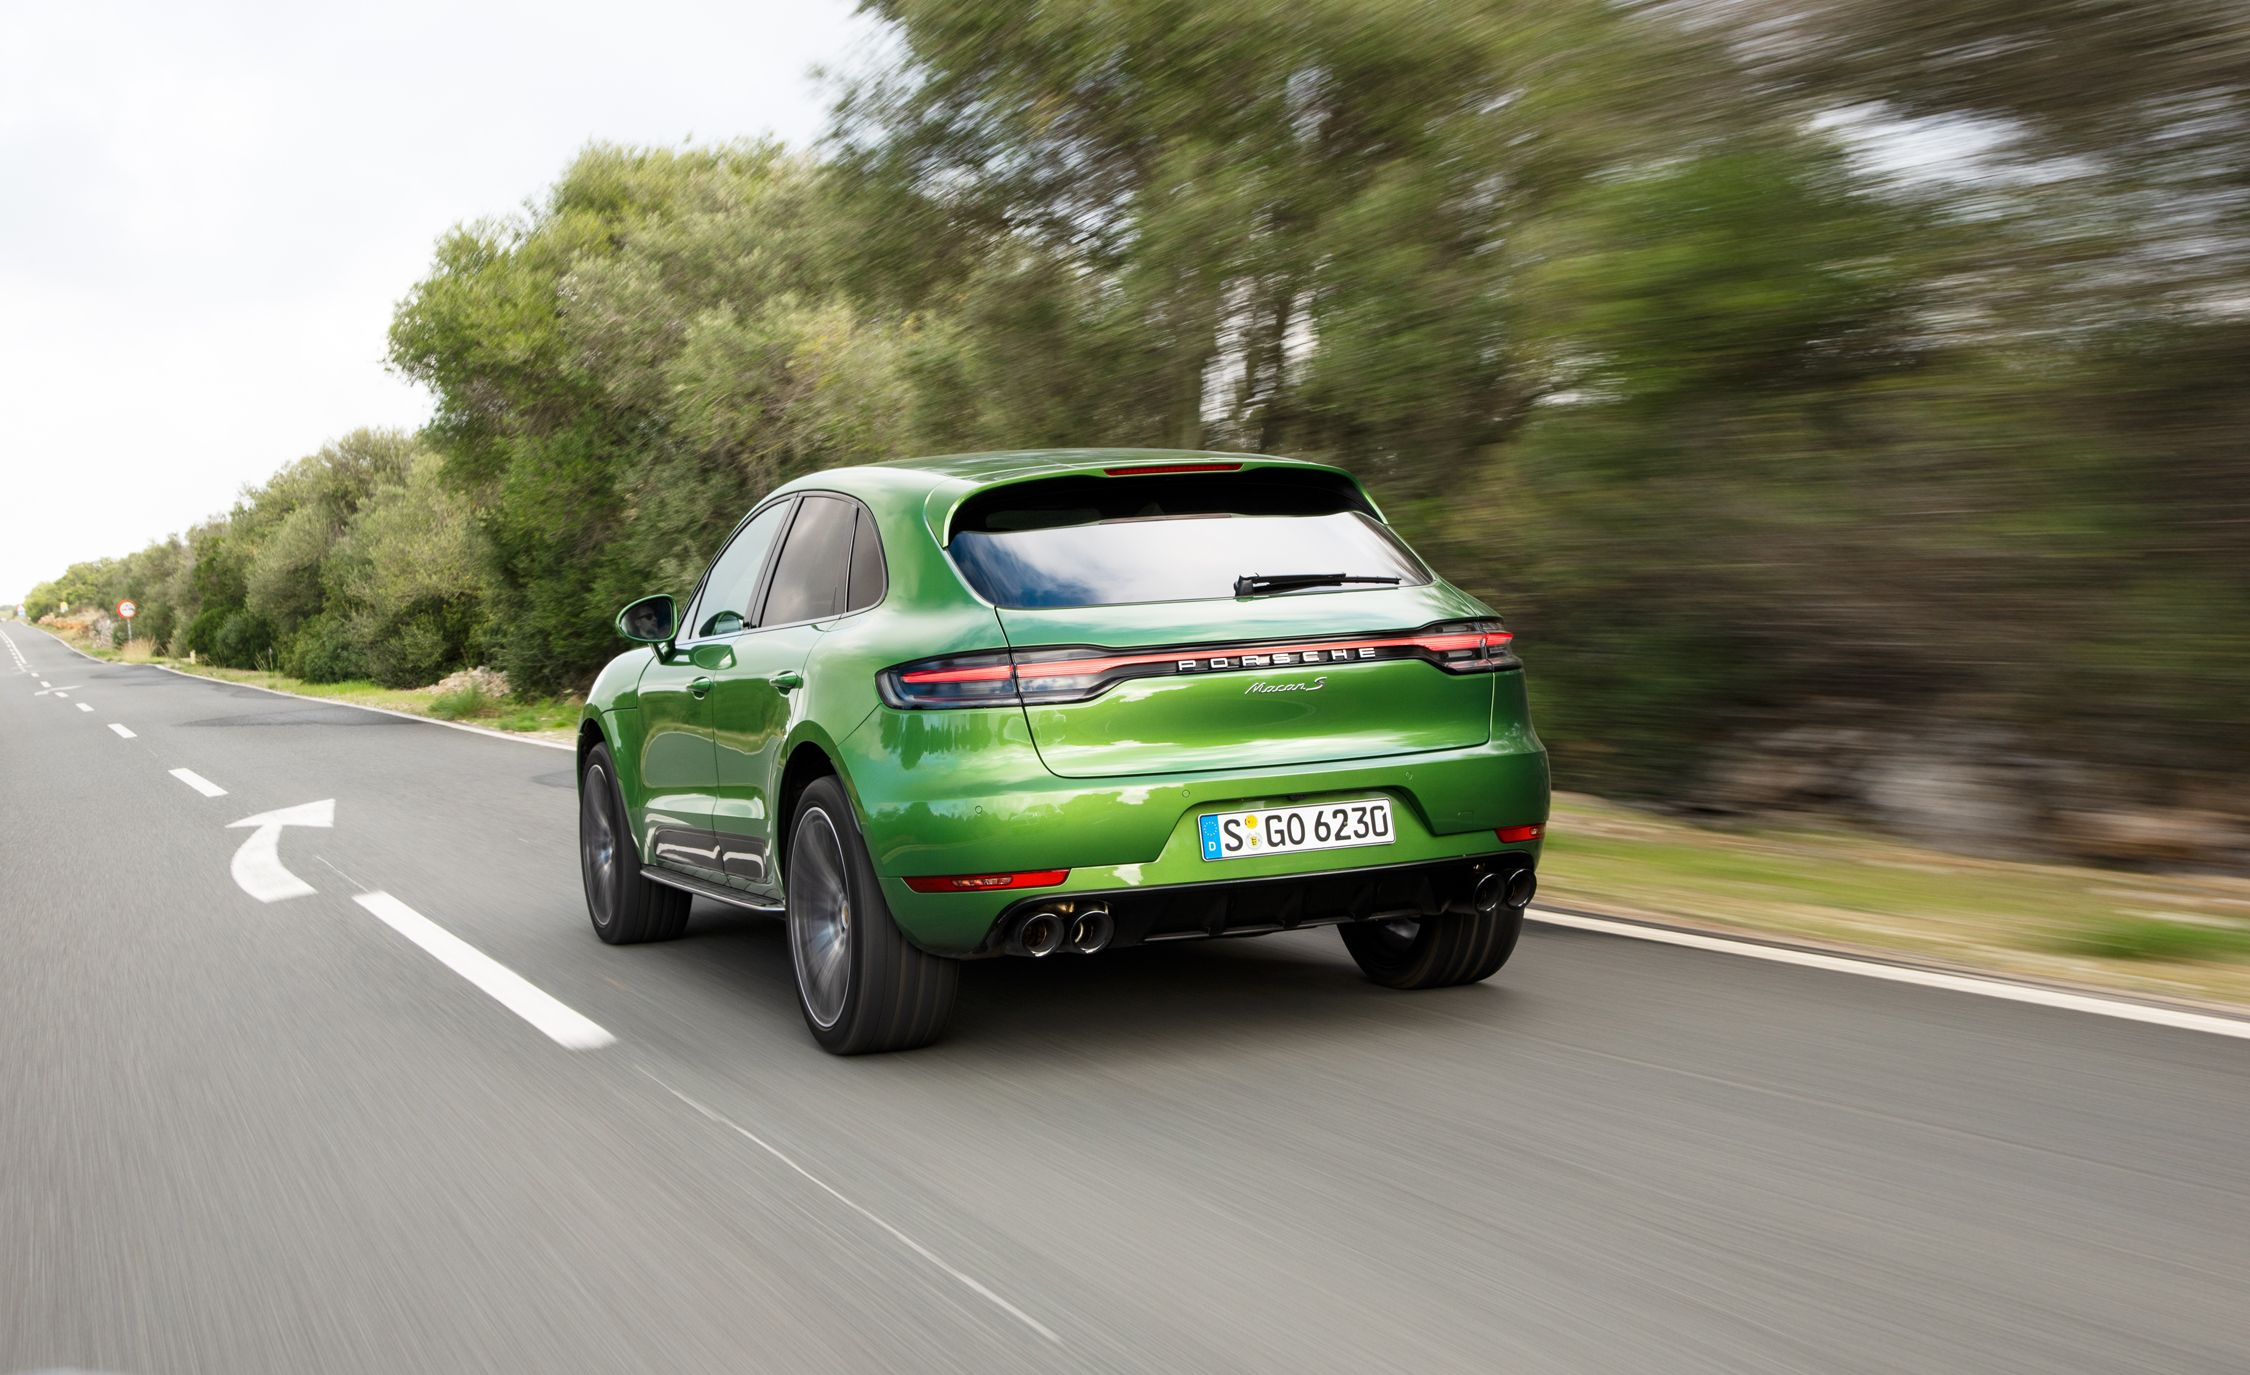 2019 Porsche Macan Reviews Price Photos And Specs Go Back Gt Gallery For Parallel Circuit Definition Car Driver